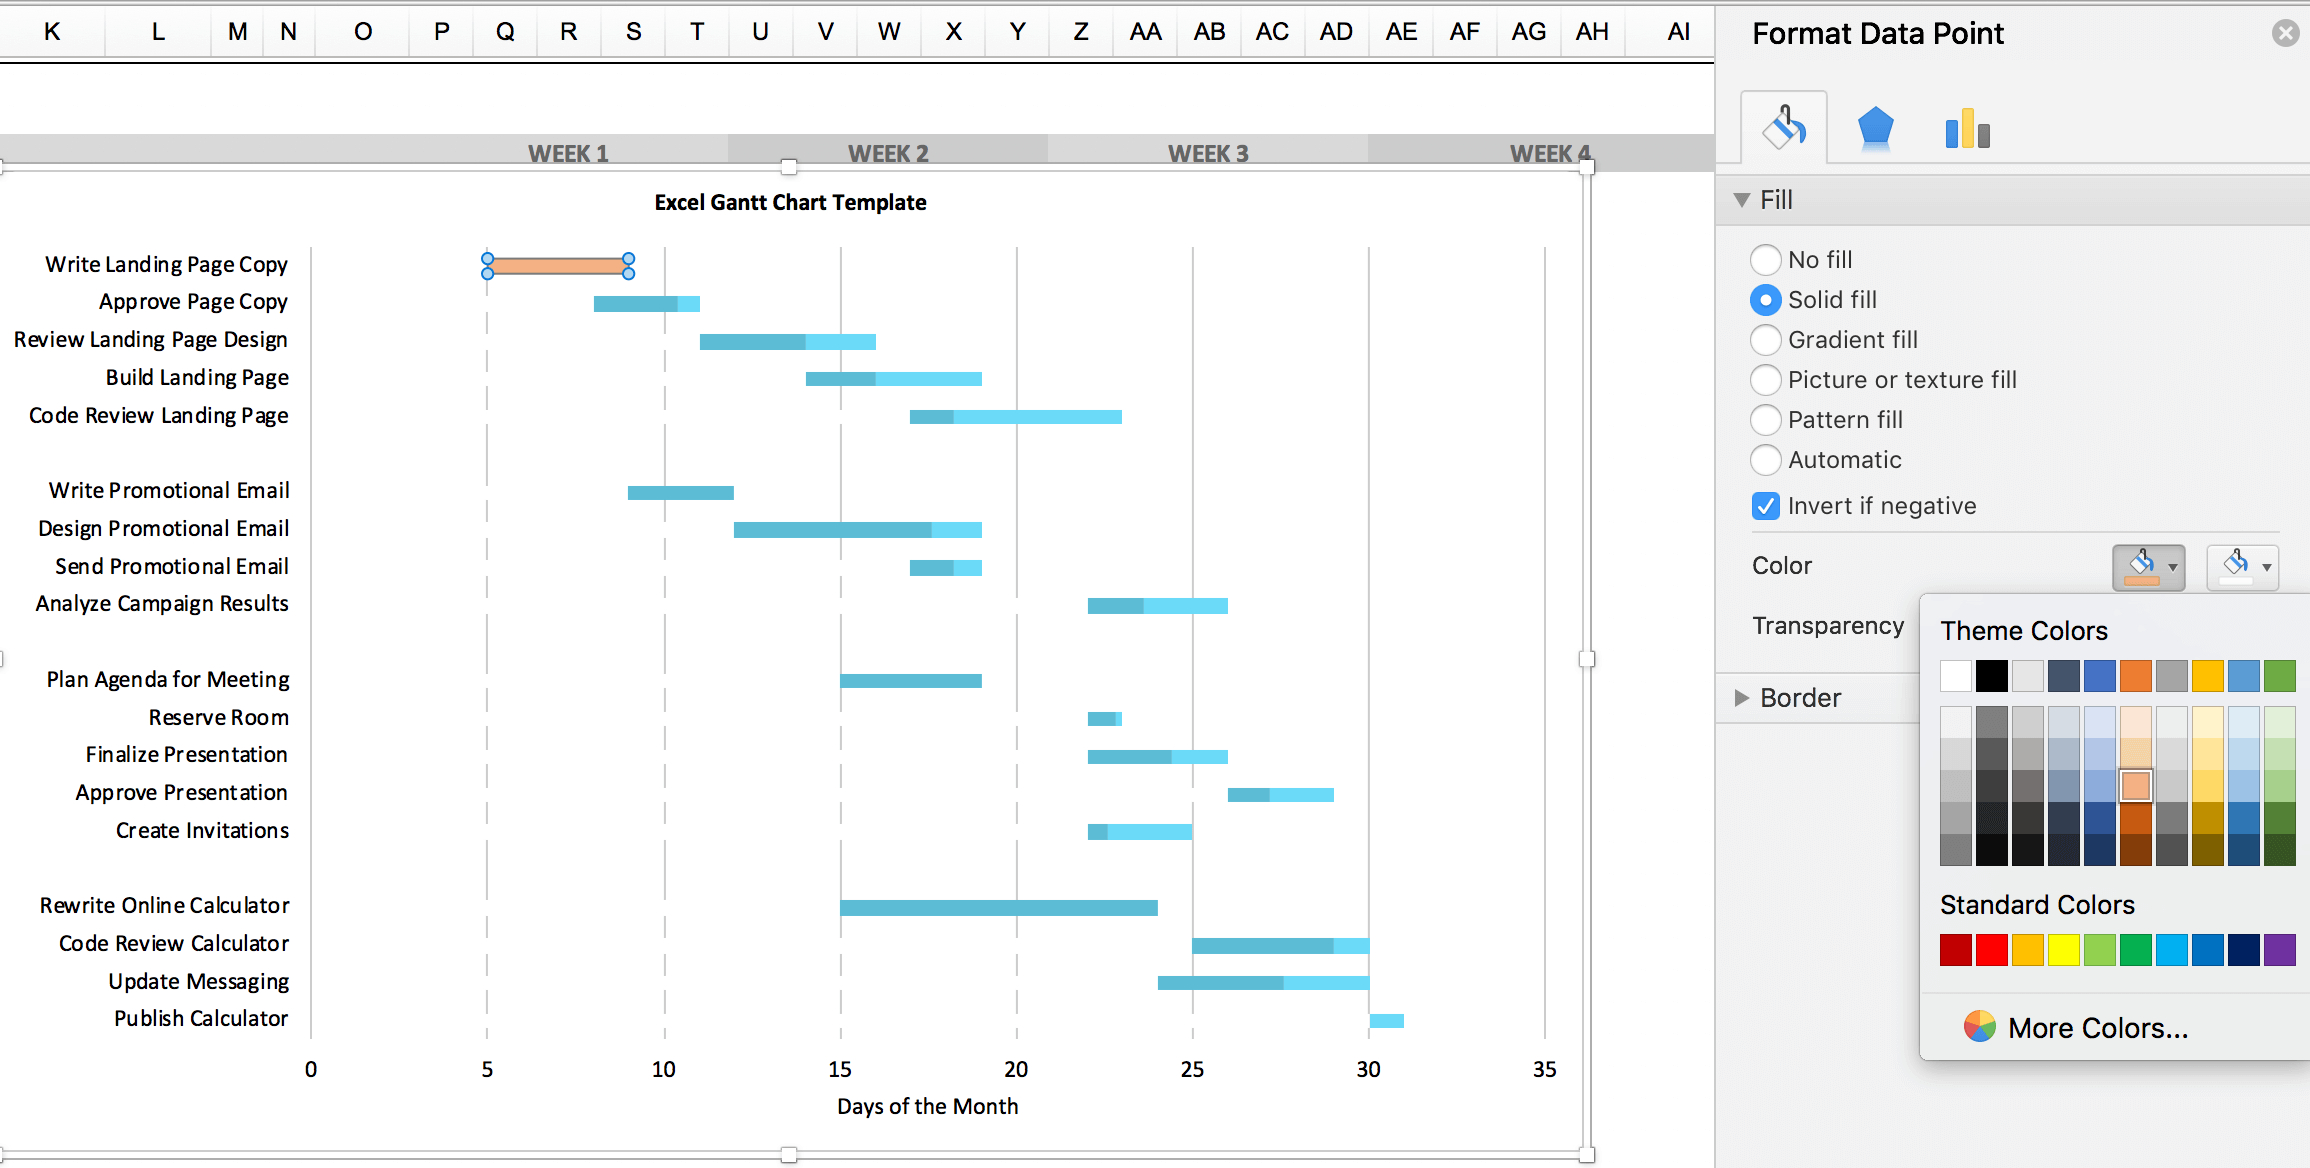 Free Gantt Chart Excel Template: Download Now | Teamgantt With Microsoft Excel Gantt Chart Template Free Download